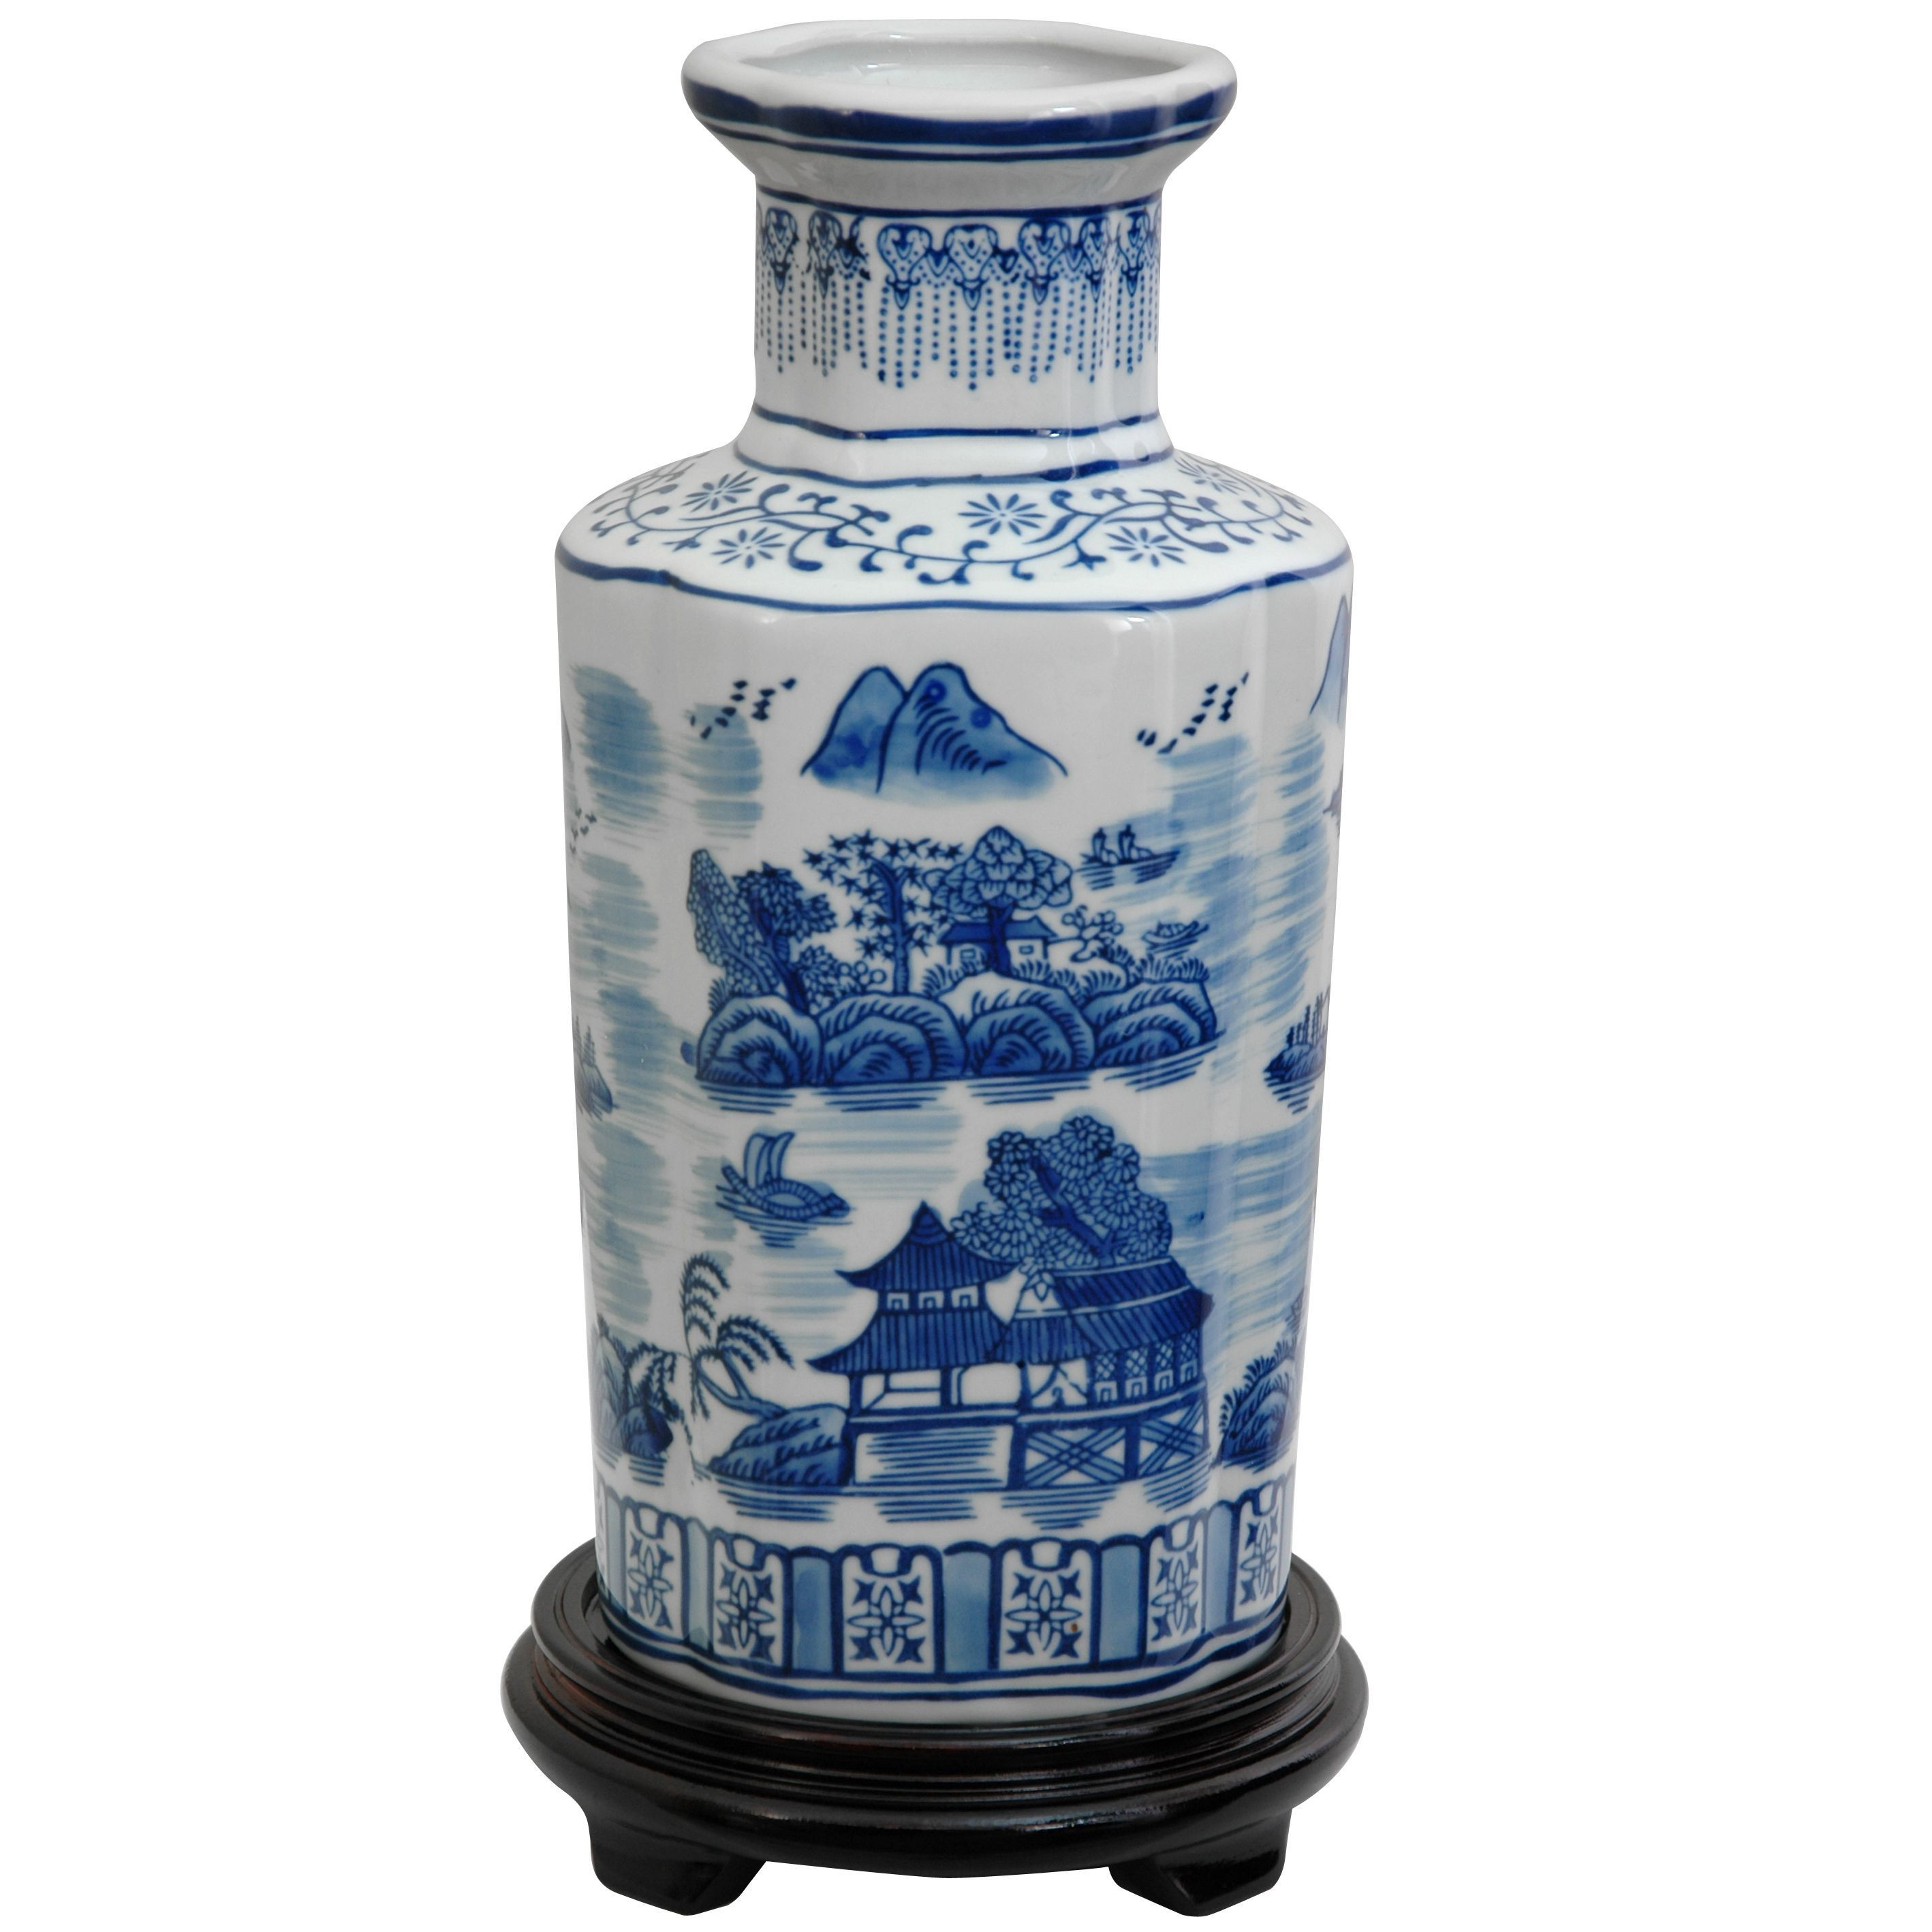 chinese vase stand of handmade porcelain 12 inch blue and white landscape vase 12 with handmade porcelain 12 inch blue and white landscape vase china